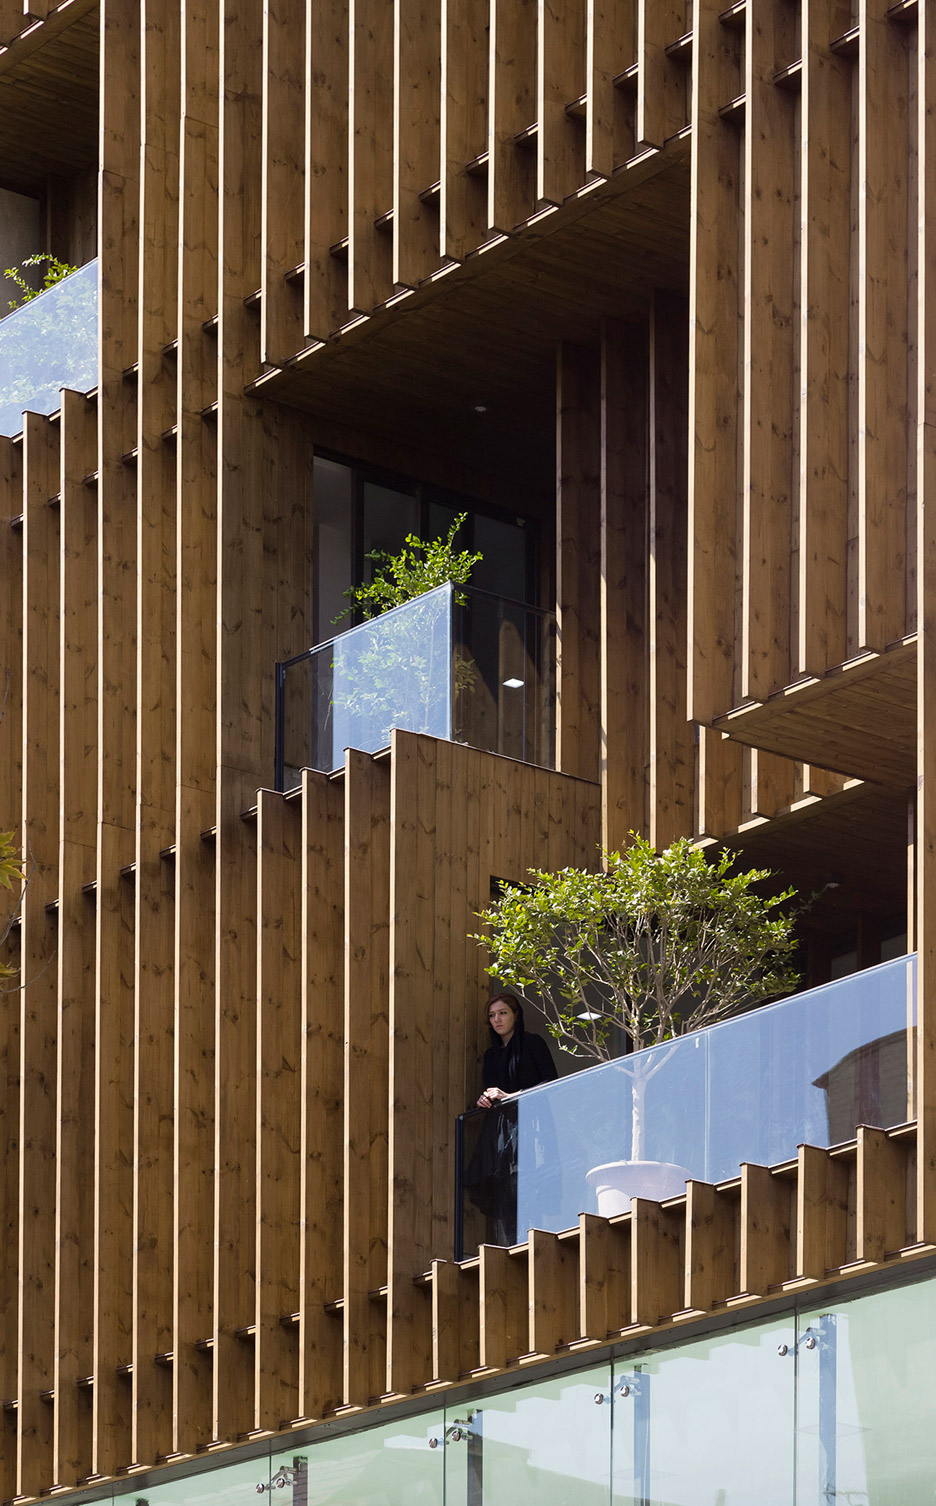 office-block-tehran-lp2-architecture-studio-iran-commercial-facade-connection-relationship-interior-exterior-wood_dezeen_936_0